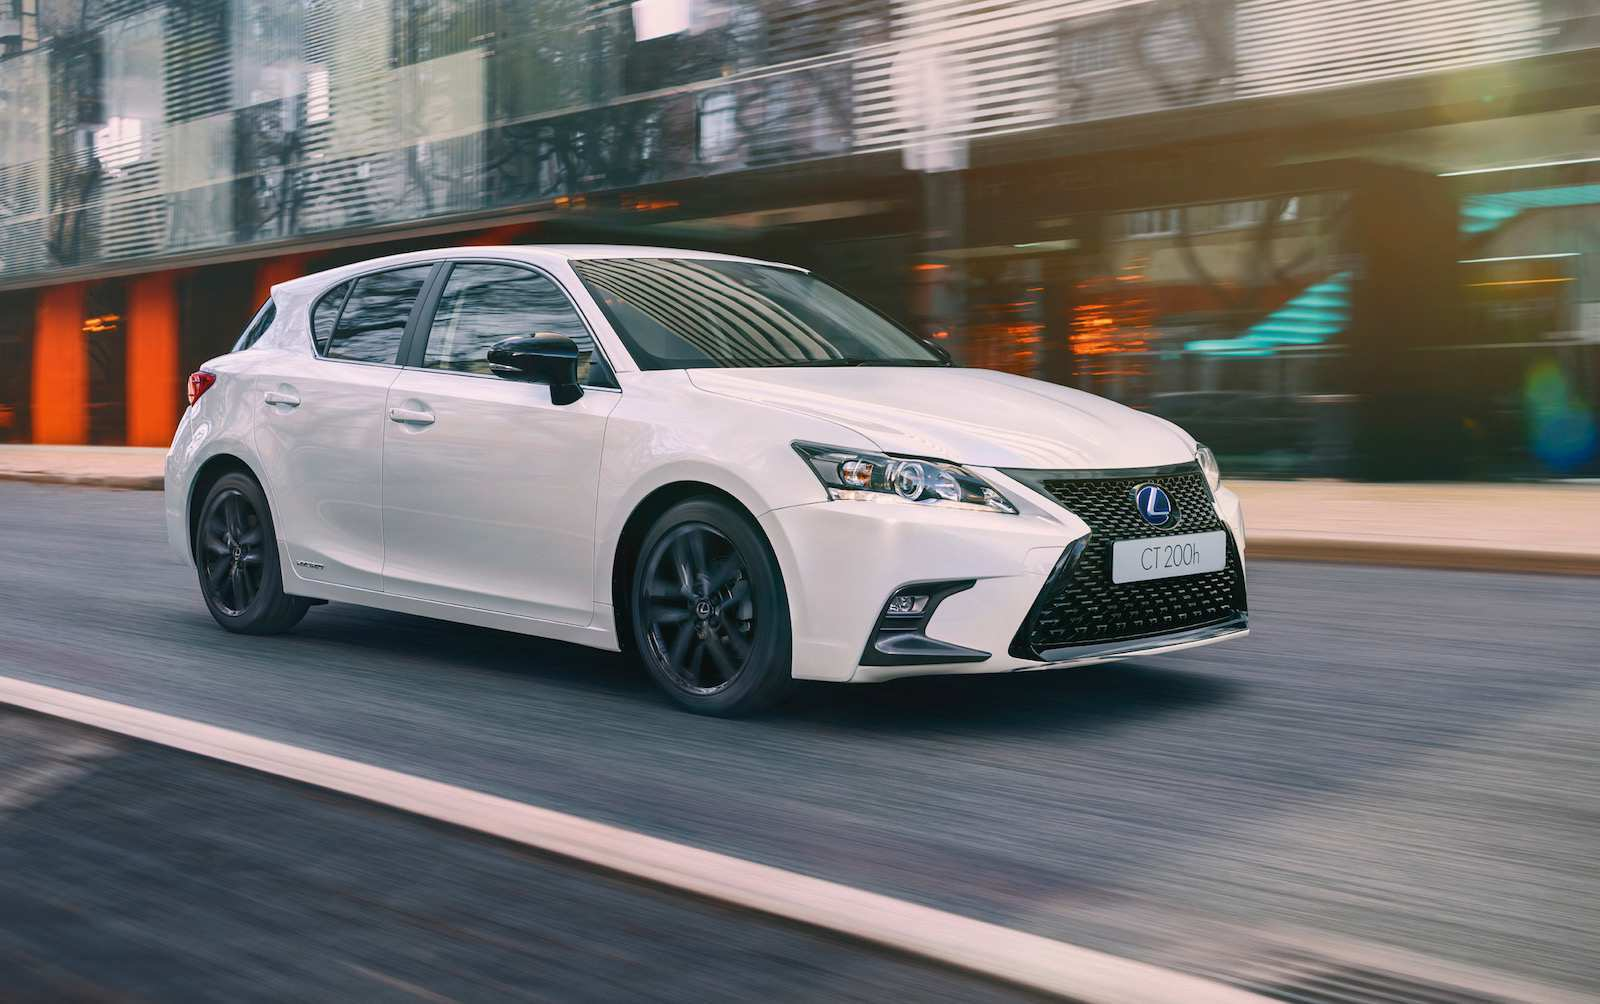 66 The Best 2019 Lexus CT 200h Interior